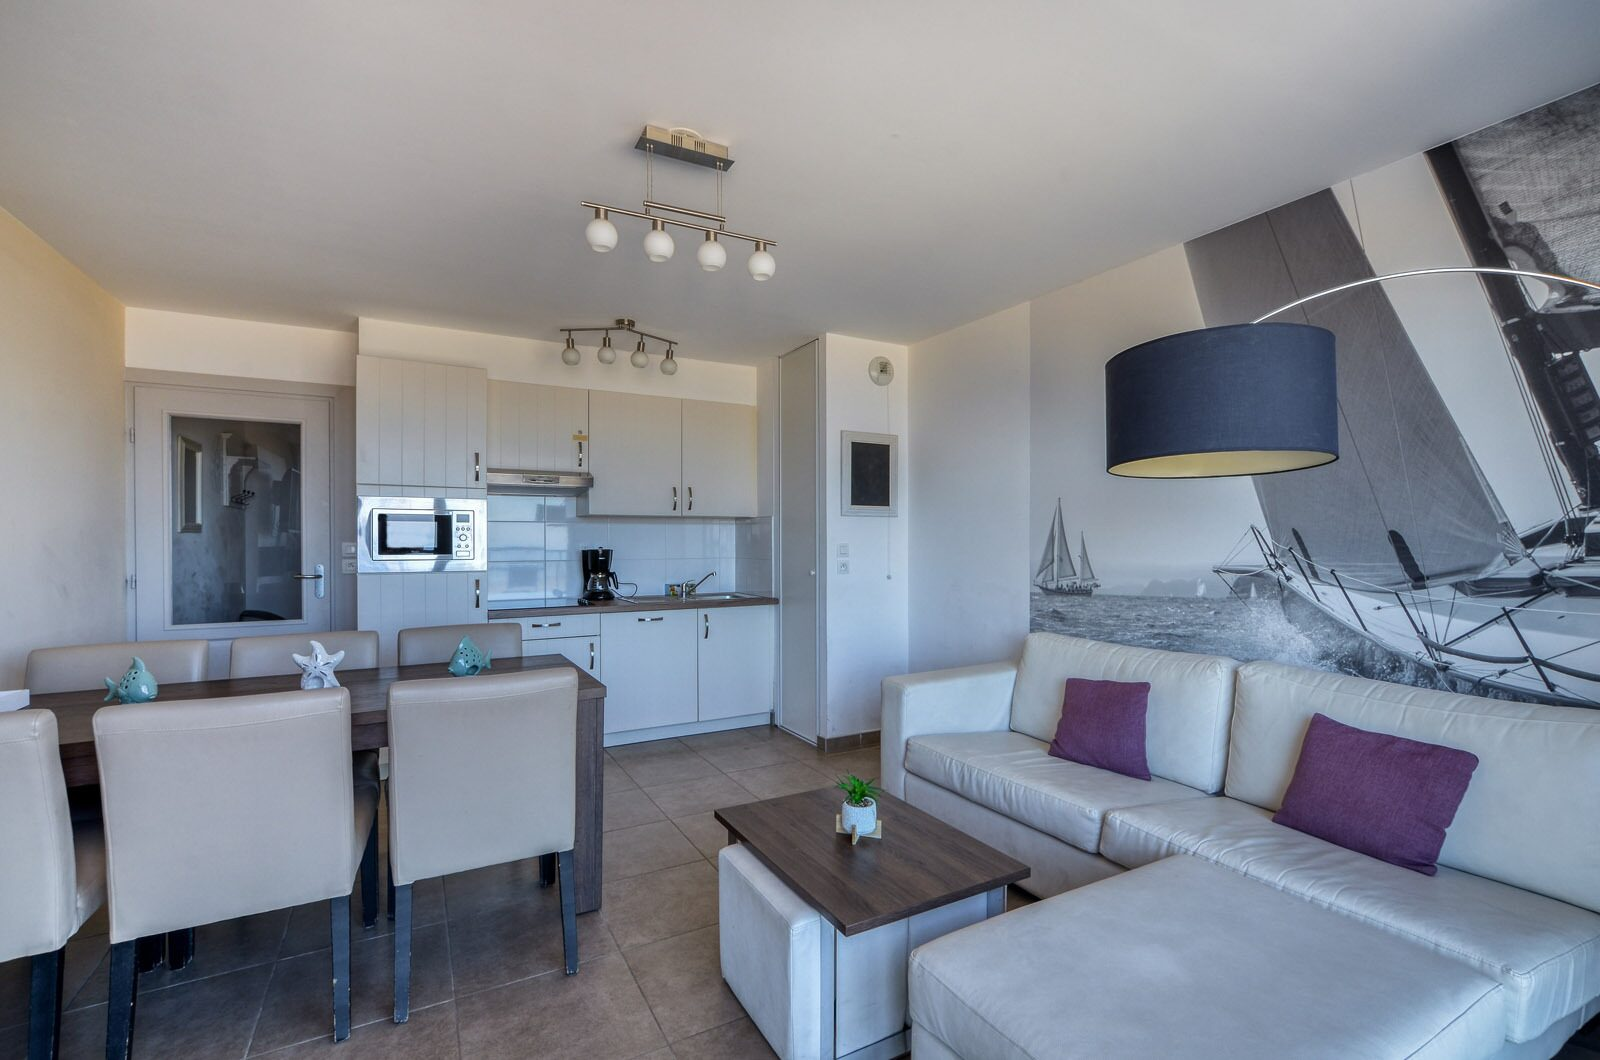 Comfortable apartments for up to 6 people with seaview